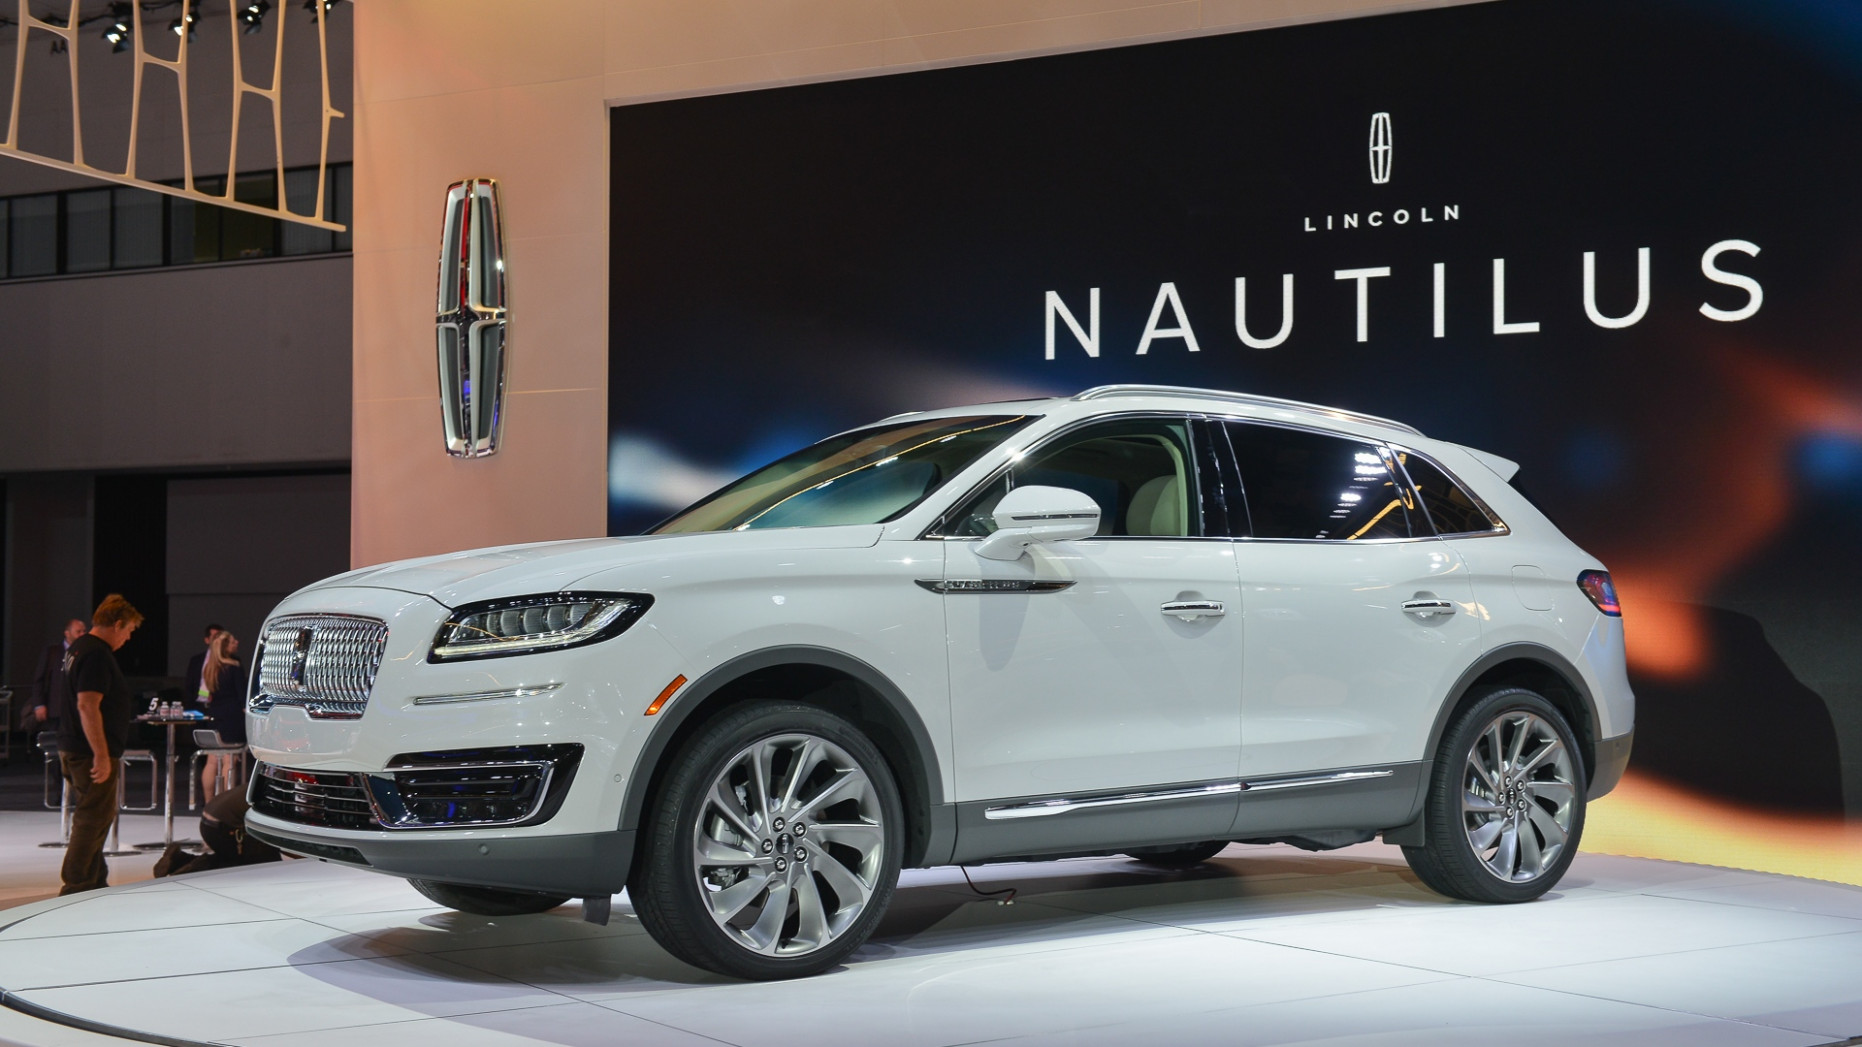 7 Lincoln Nautilus improves on MKX in almost every way